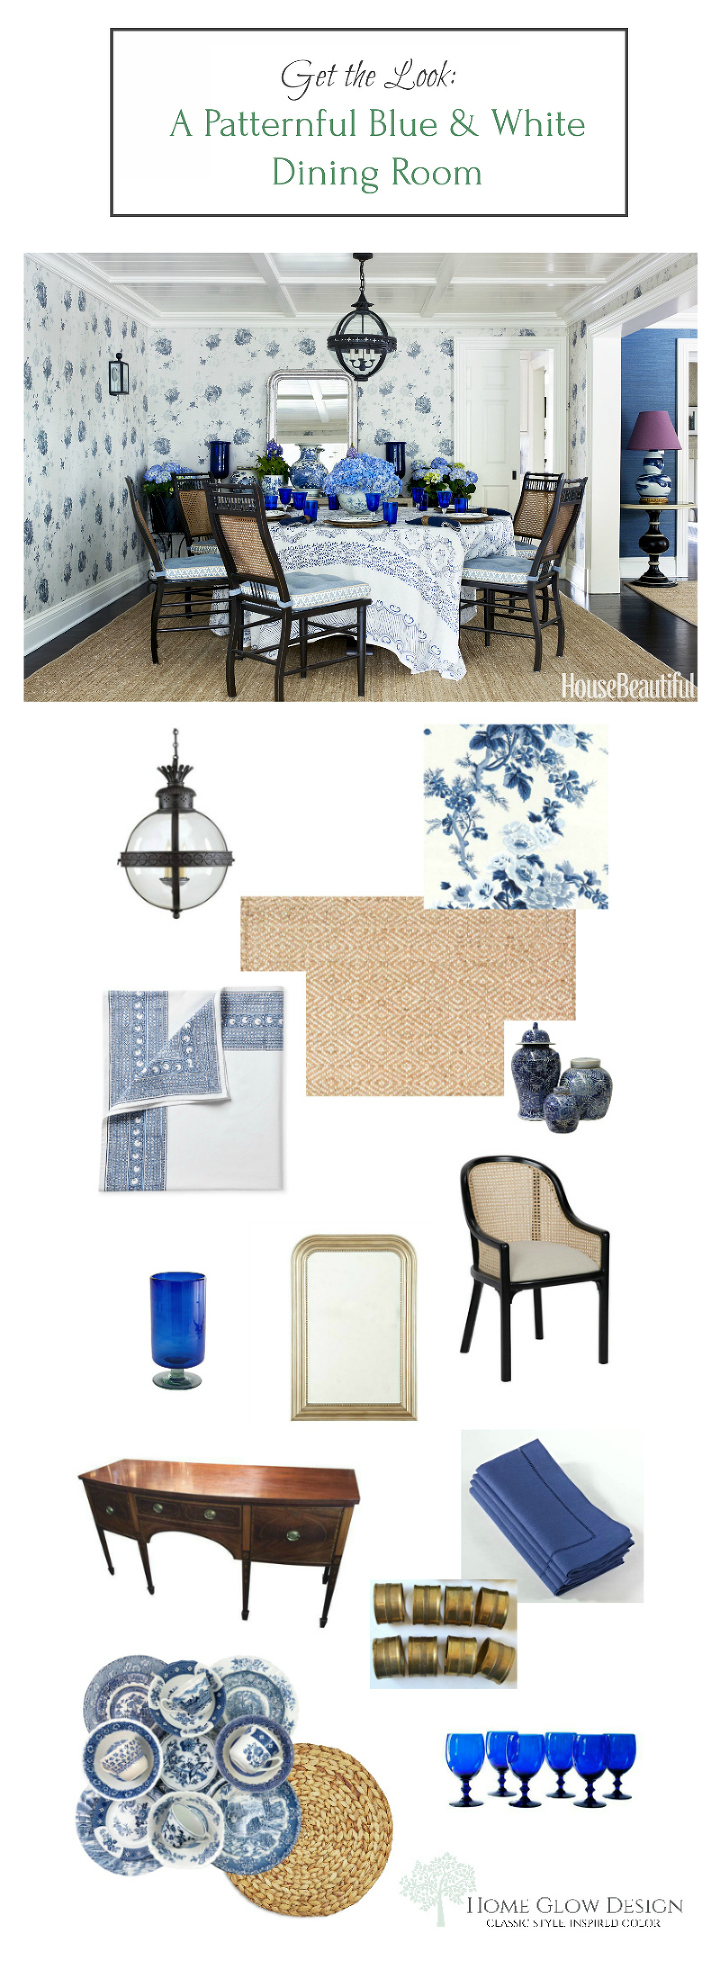 blue white dining room patternful